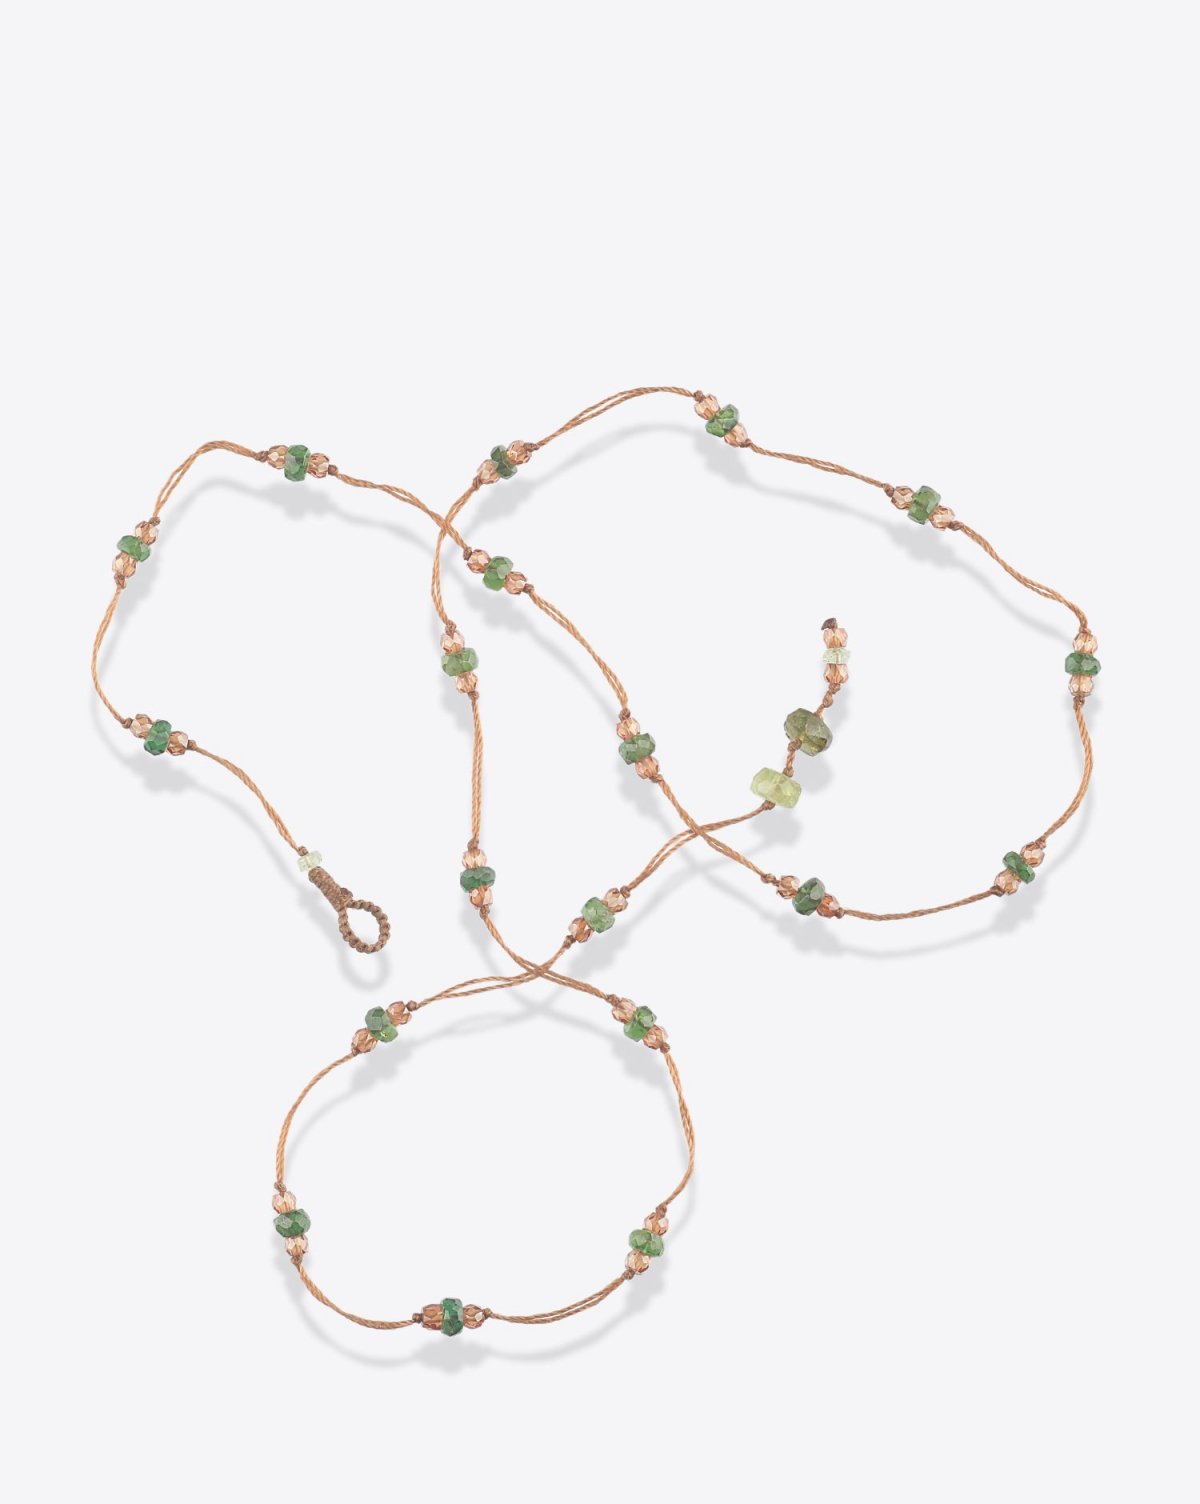 Sharing Bracelet 3 Tours Loopy Sparkly Duo - Cordon Tabac